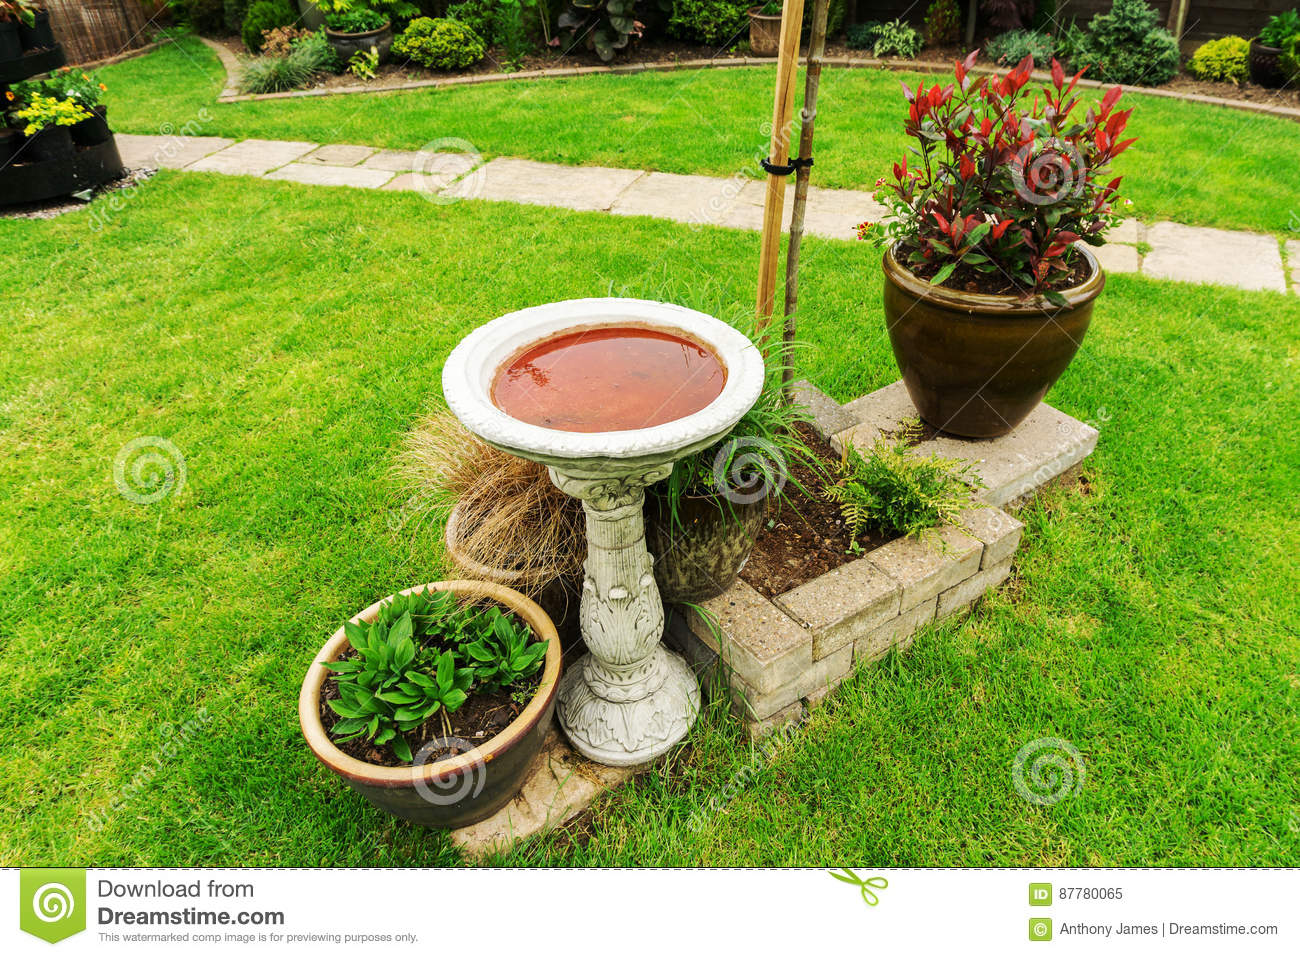 Download Bird Bath In A Garden Stock Image. Image Of Green, Centre    87780065